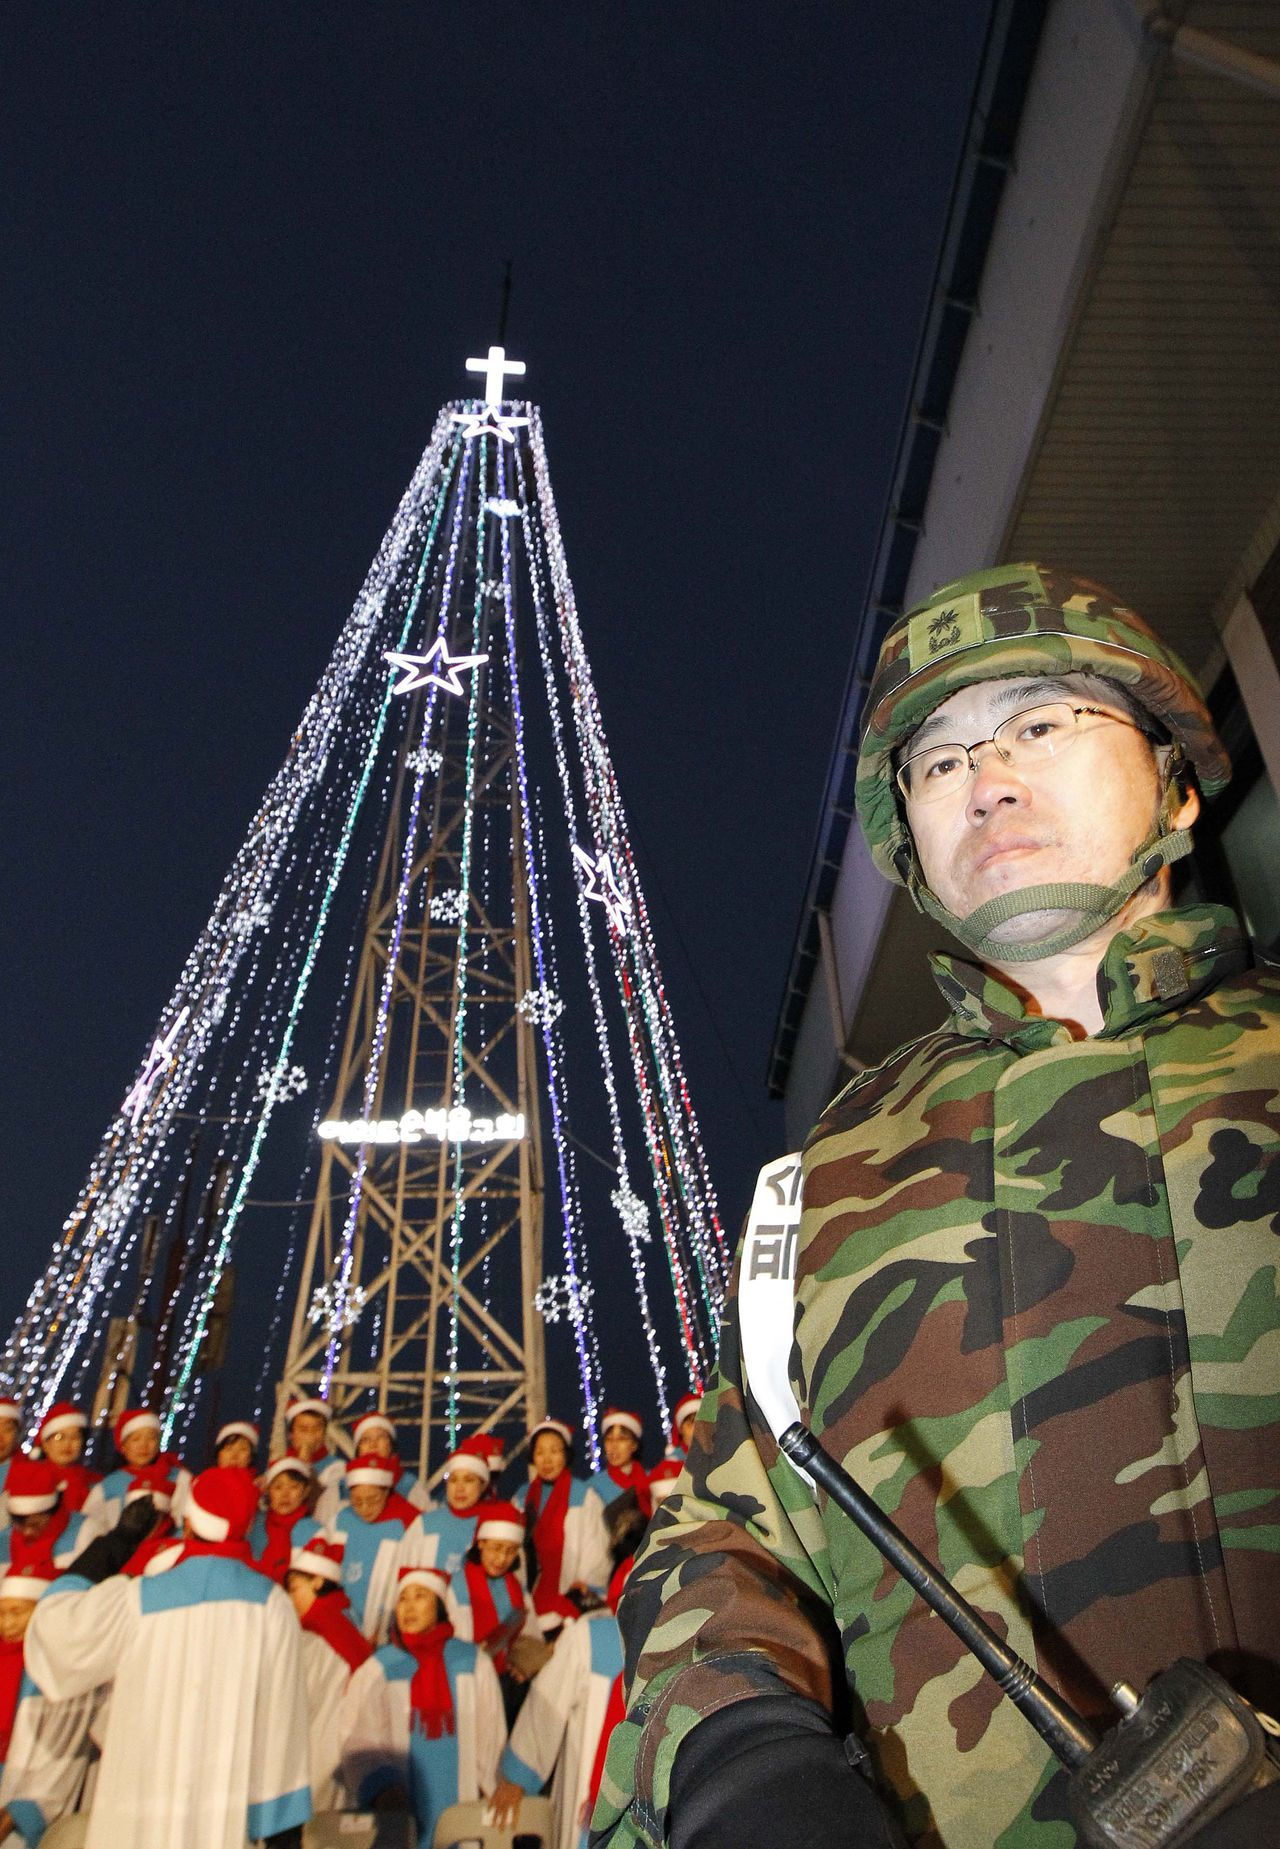 "(FILES) A South Korean military officer stands guard as Christians prepare a lighting ceremony in front of a Christmas tree atop a military-controlled hill near the tense land border in Gimpo, west of Seoul, on December 21, 2010. North Korea warned South Korea on December 11, 2011 of ""unexpected consequences"" if Seoul displays Christmas lights near the tense border, and vowed to retaliate for what it called propaganda attempts. AFP PHOTO / KIM JAE-MYUNG / FILES"